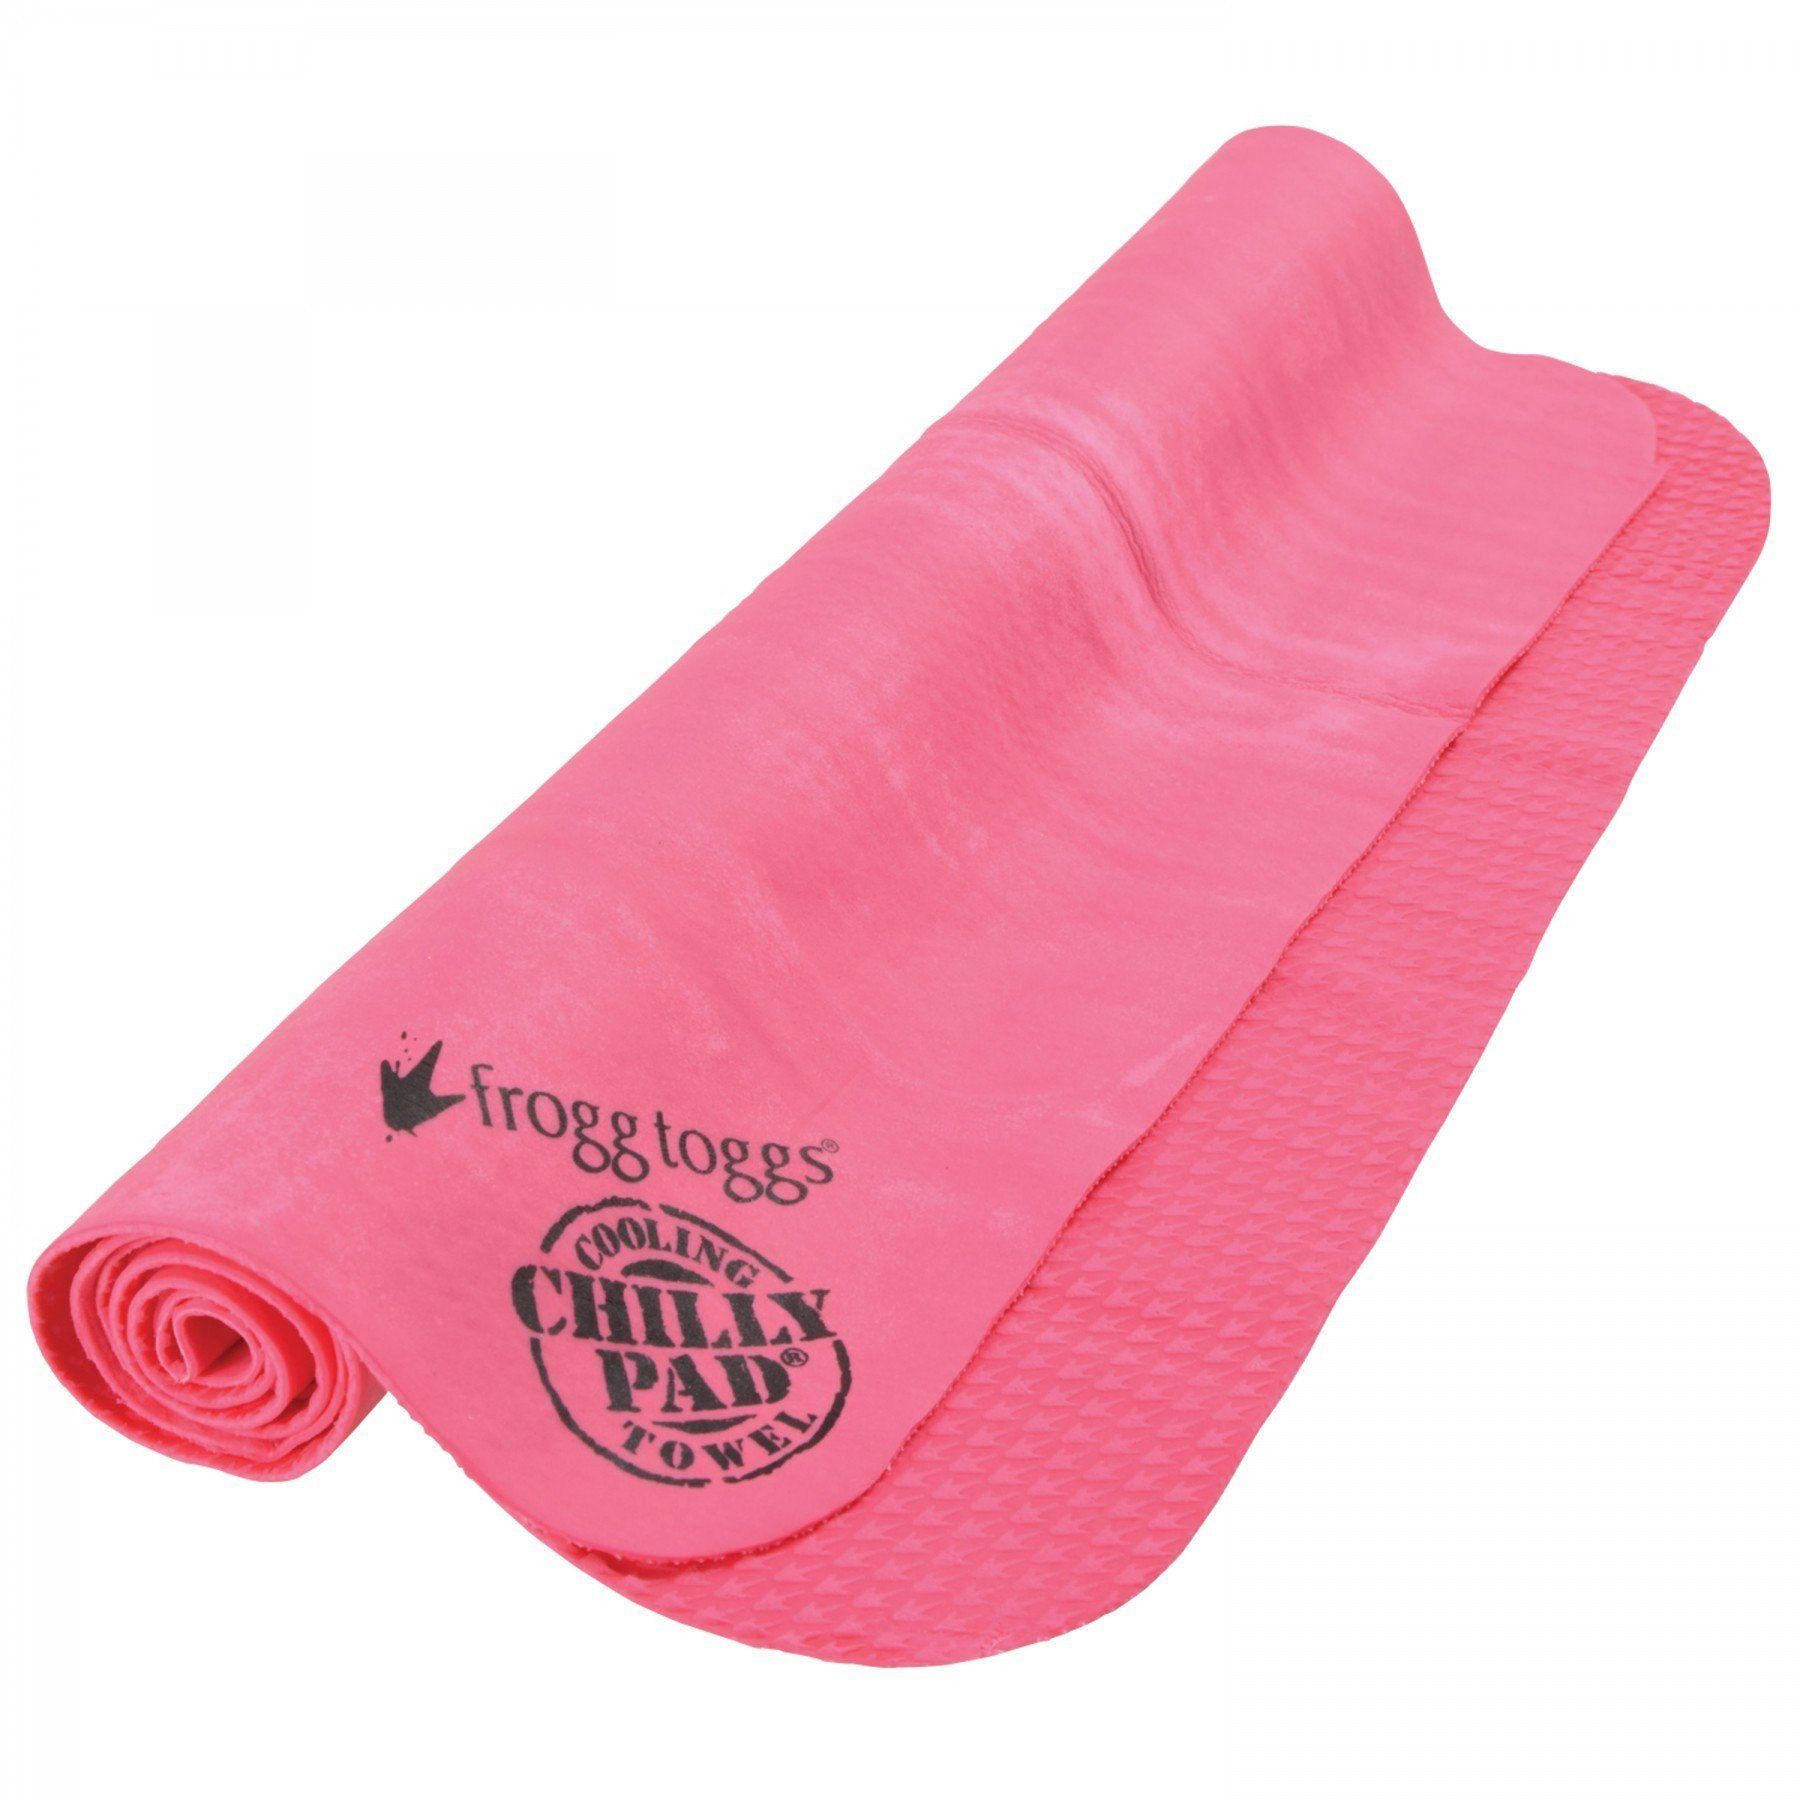 Frogg Toggs Chilly Pad Cooling Towel Chilly Pad Cooling Towels